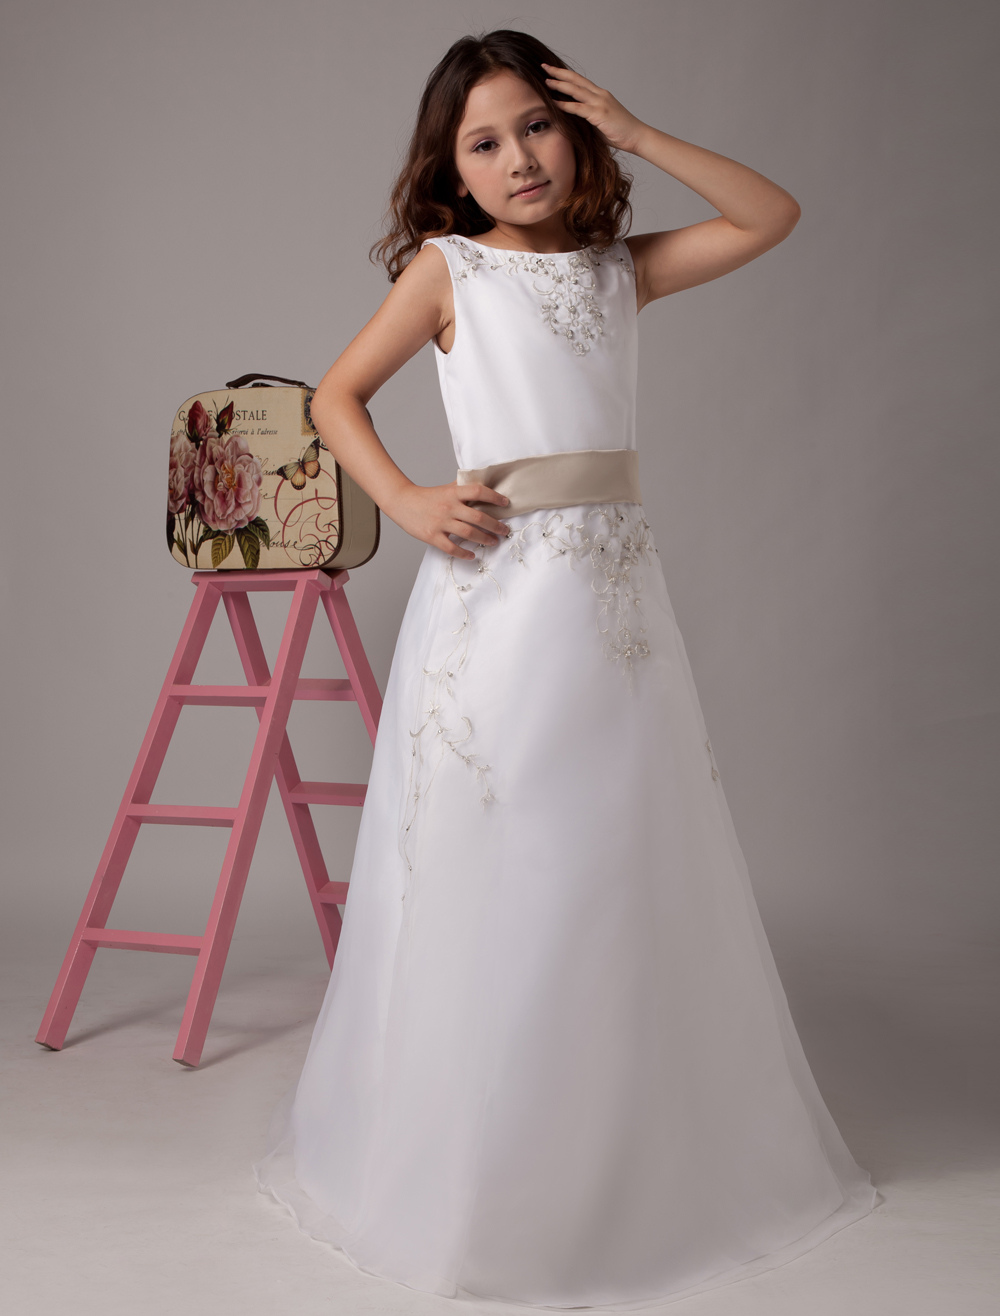 Flower Girl Dresses White Satin Organza Kids Party Dresses Sleeveless Sash Lace Beaded First Communion Dress